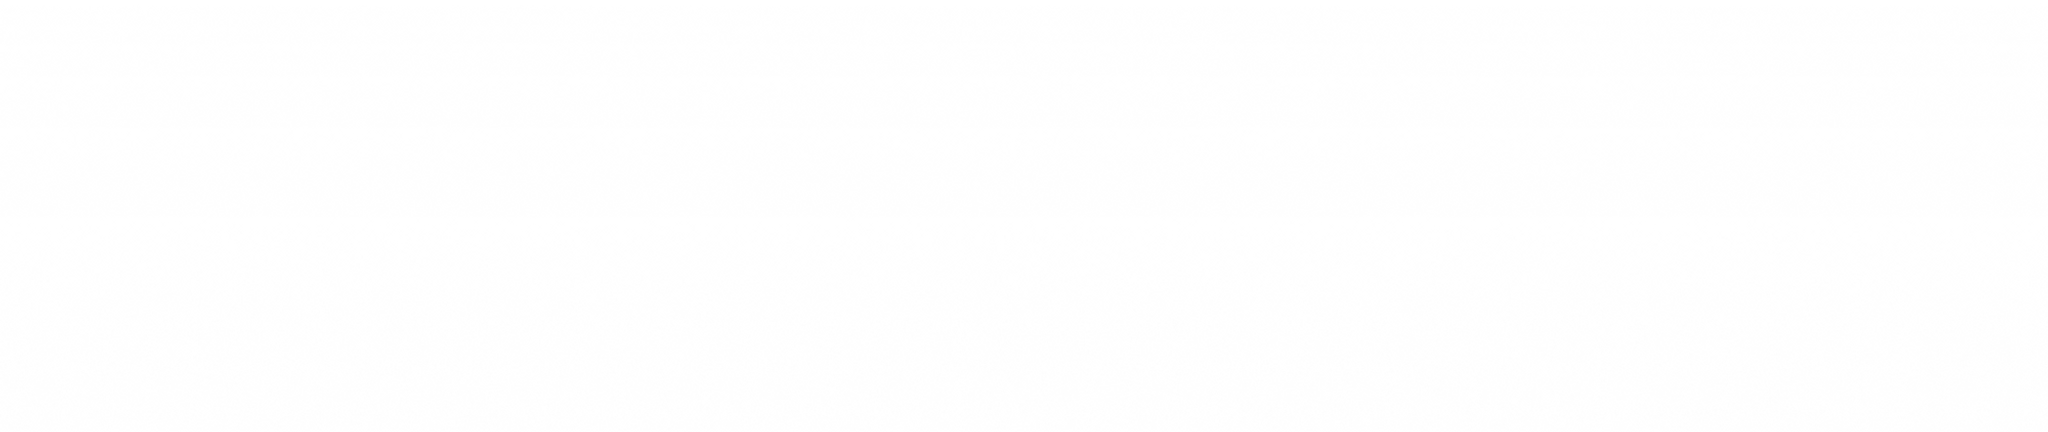 white-transition-fade-1.png